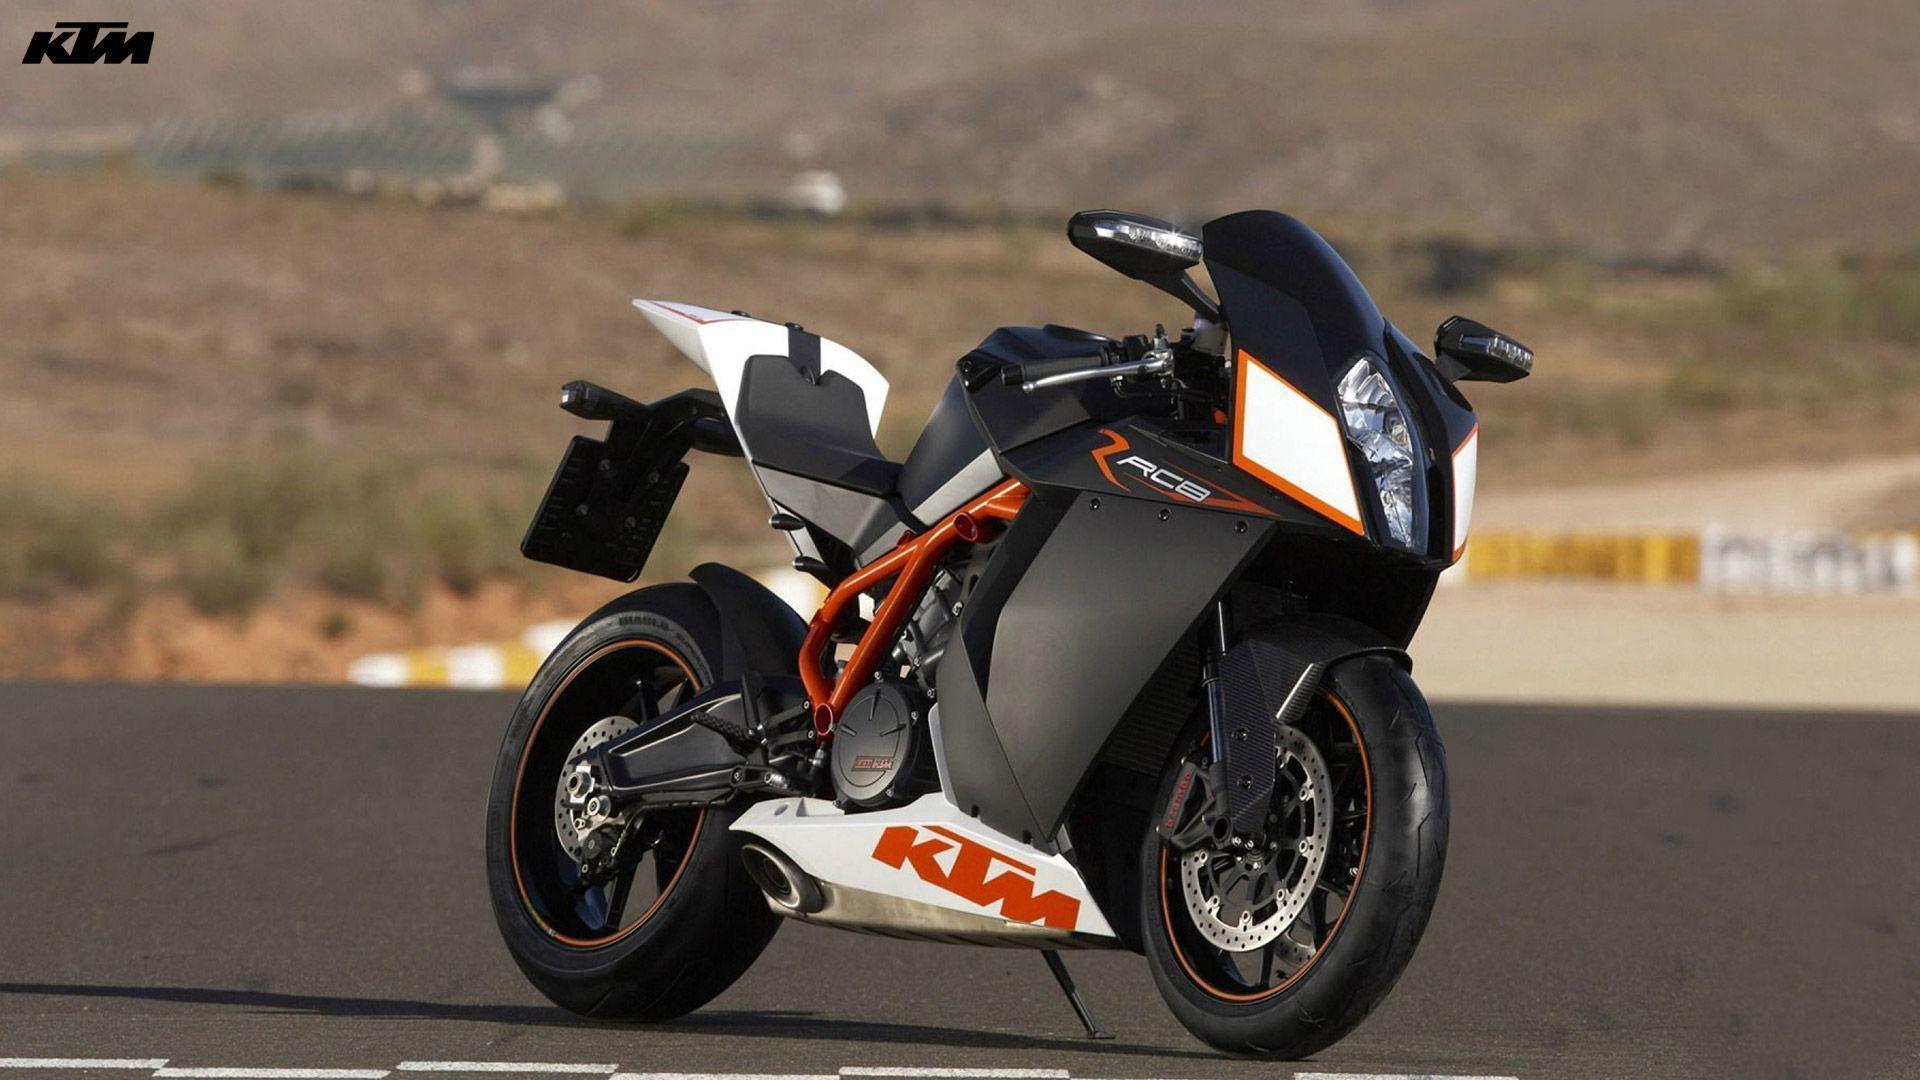 Ktm Rc 200 2018 Wallpapers Wallpaper Cave